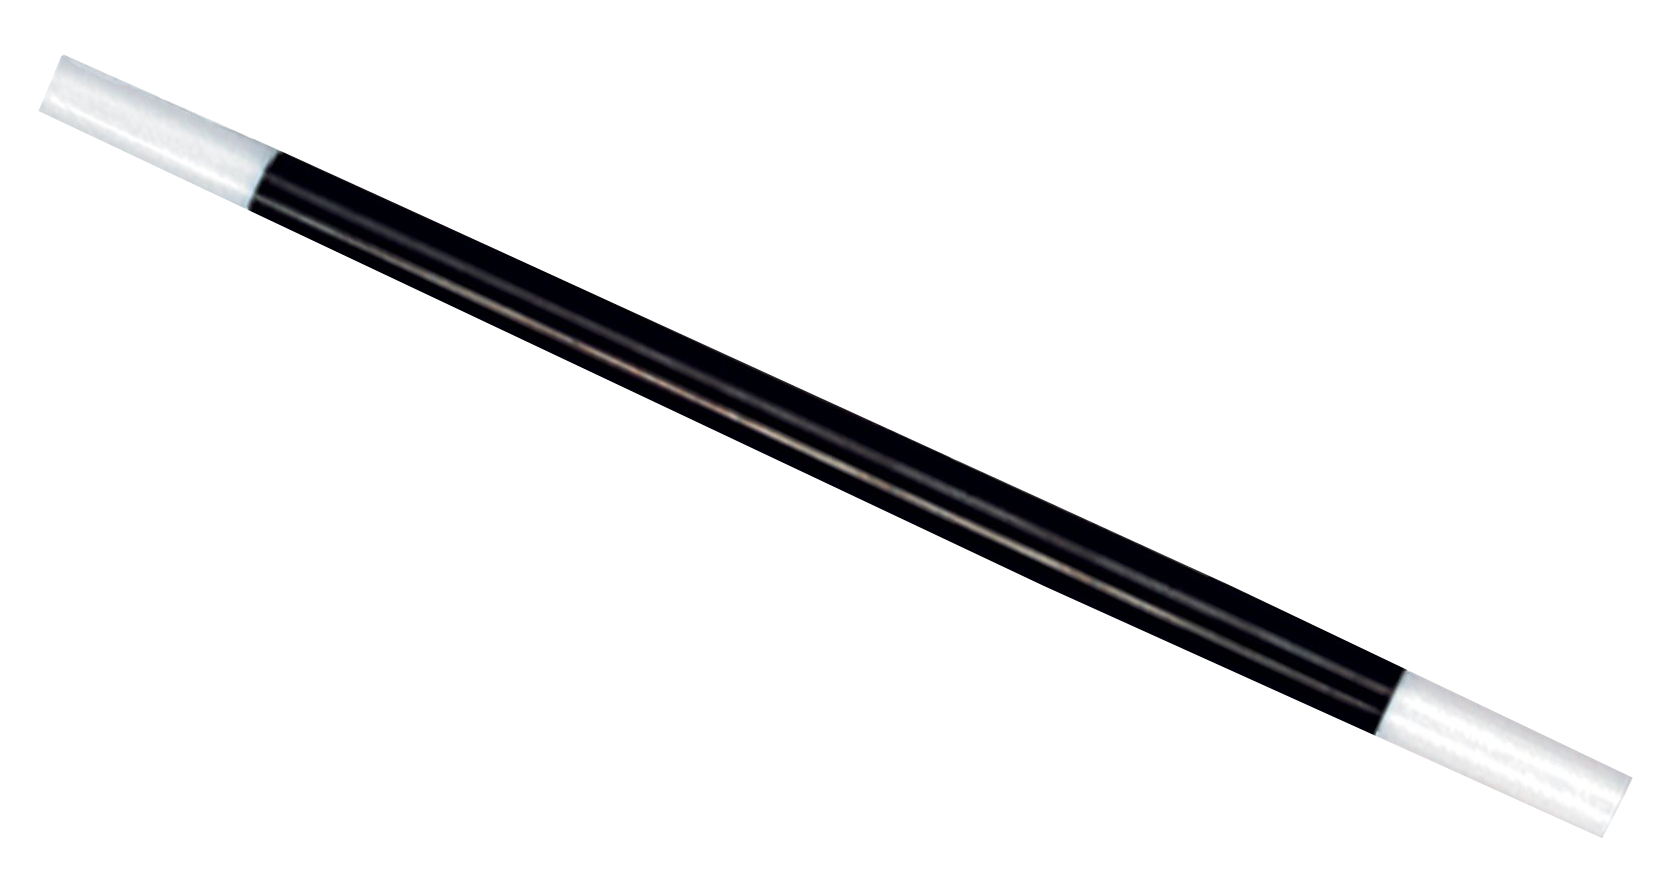 wand transparent master